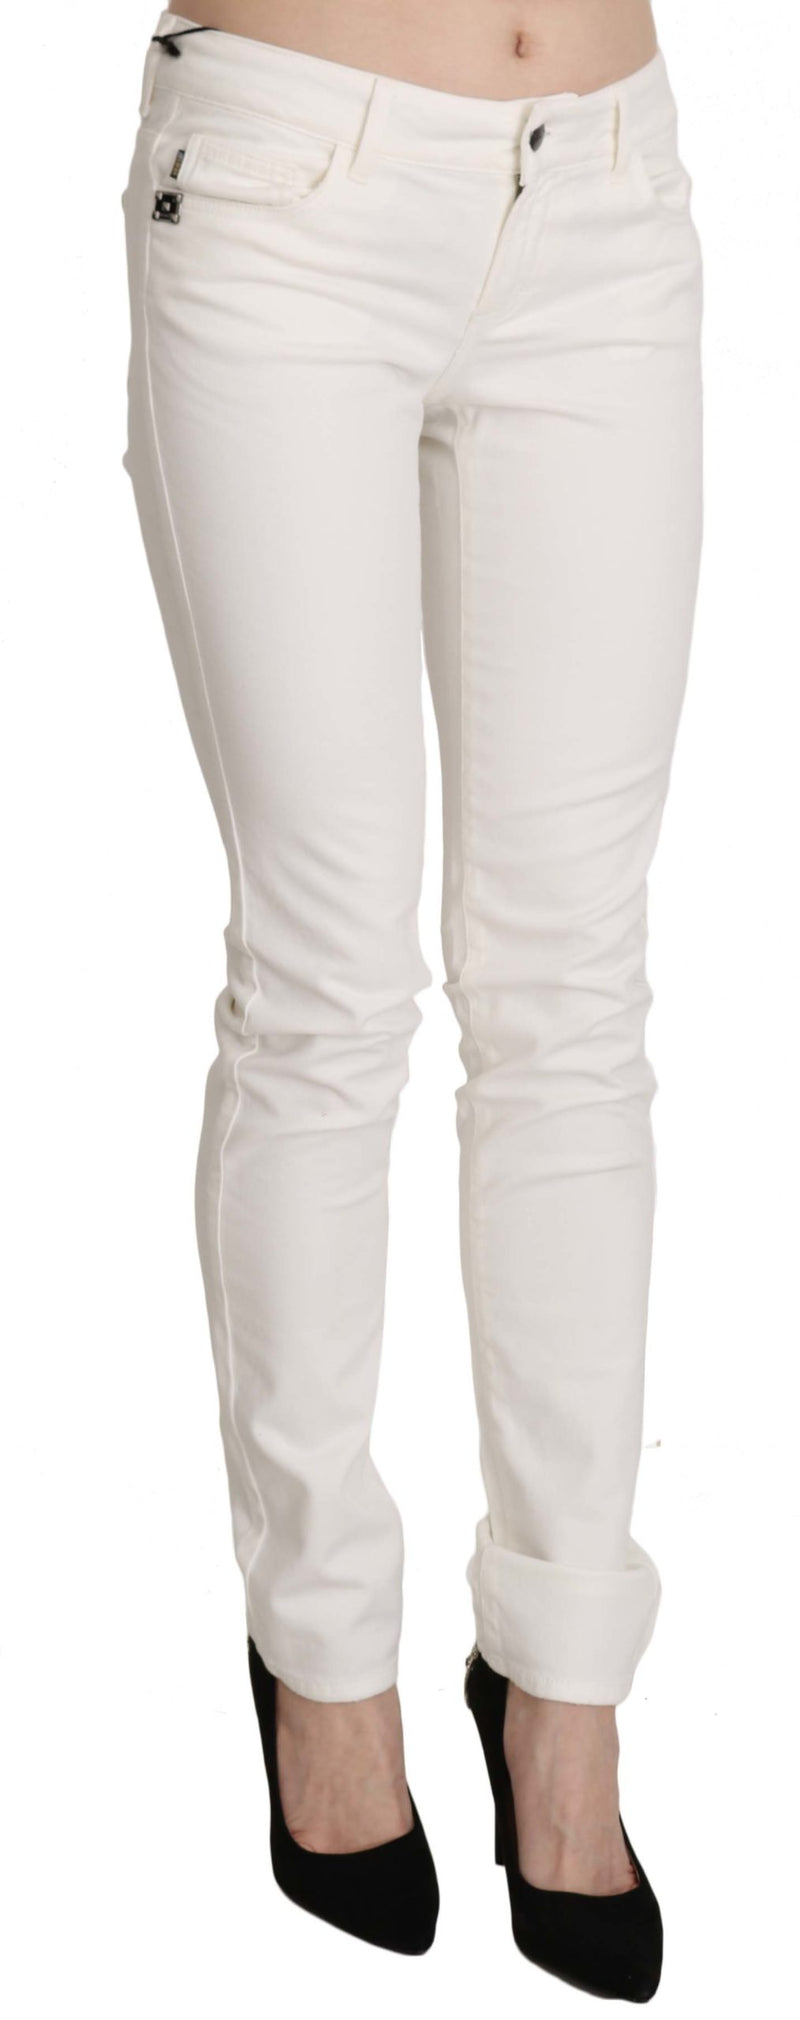 White Cotton Low Waist Skinny Denim Pants Jeans